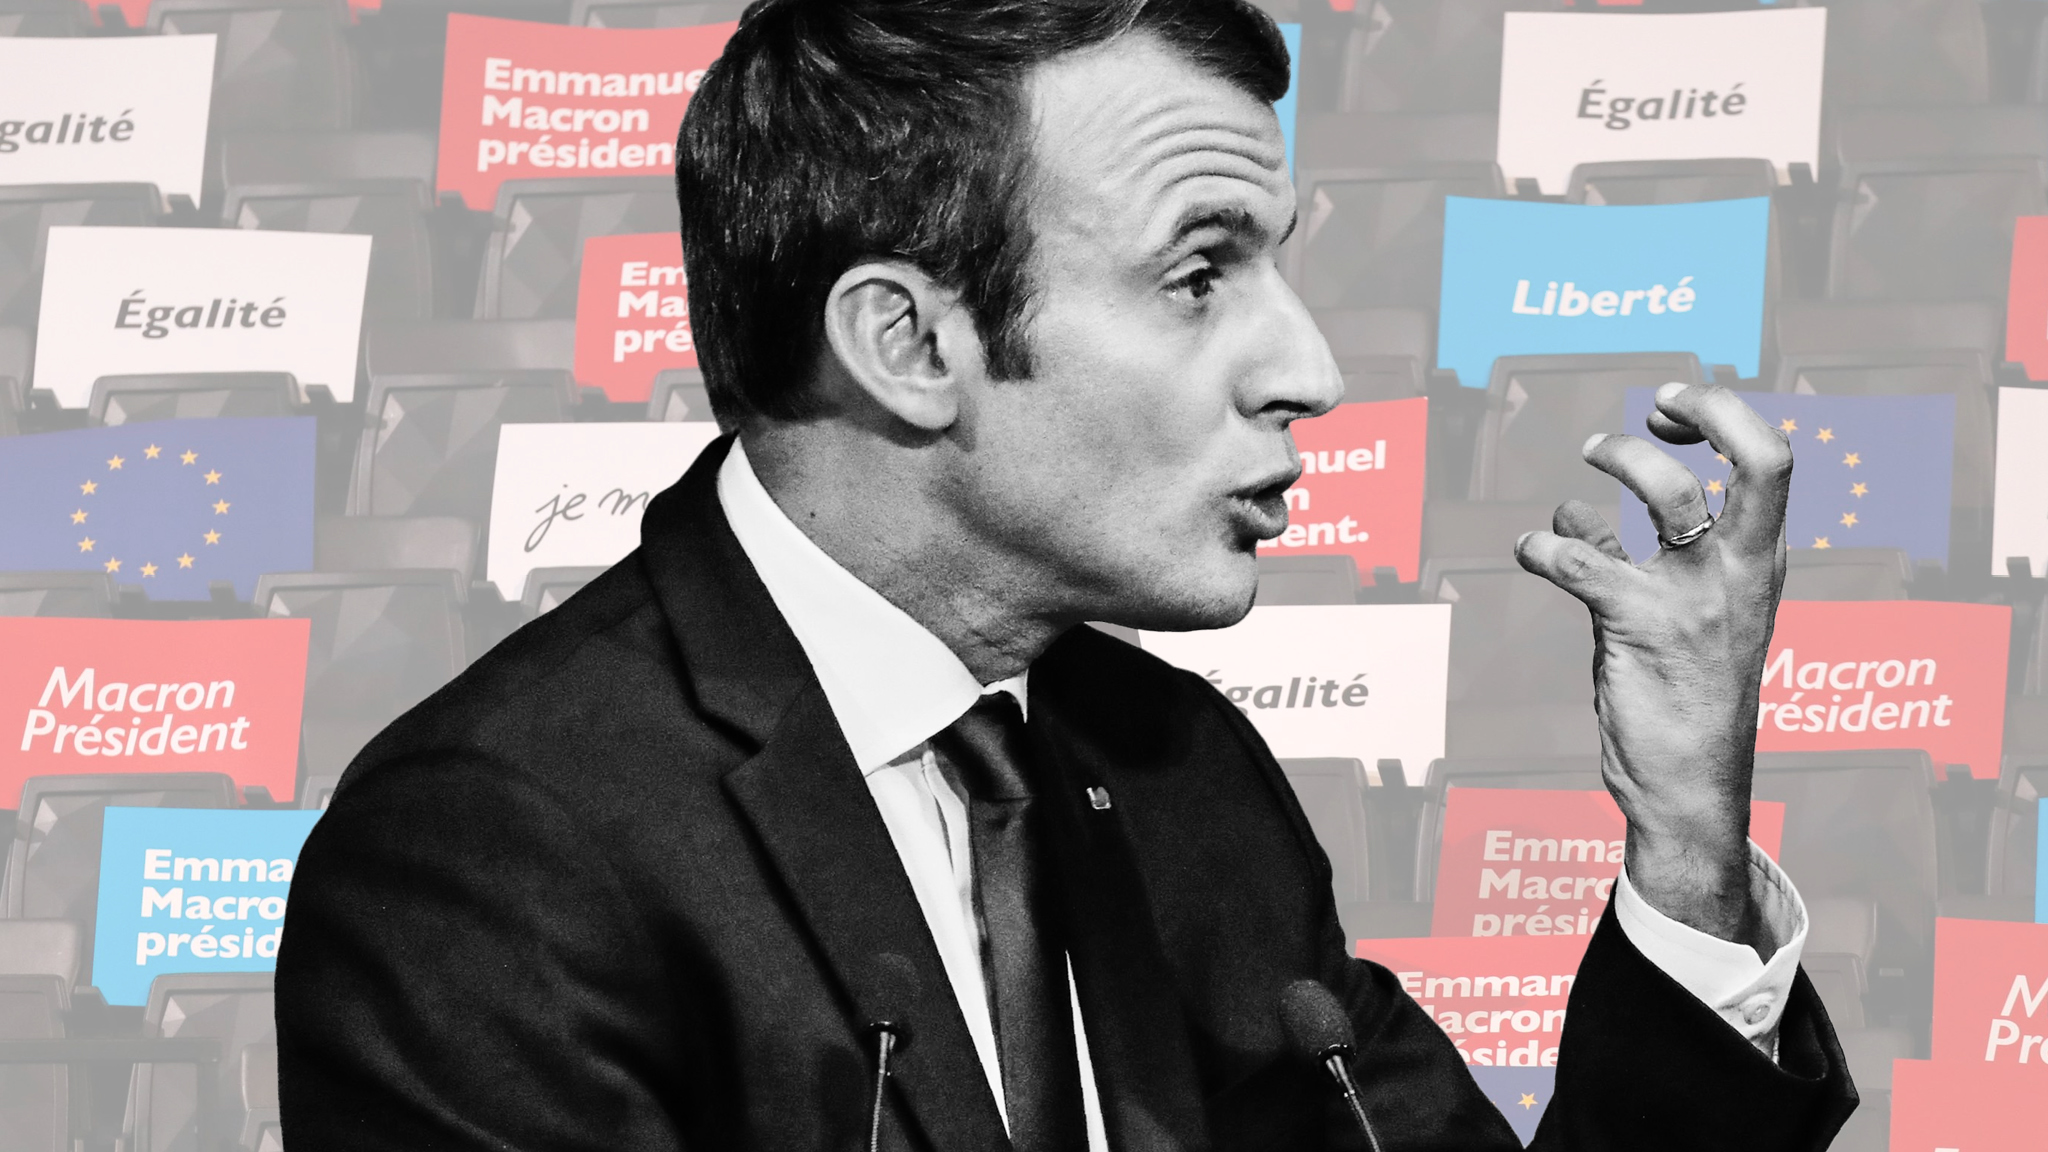 Emmanuel Macron: in search of the popular touch